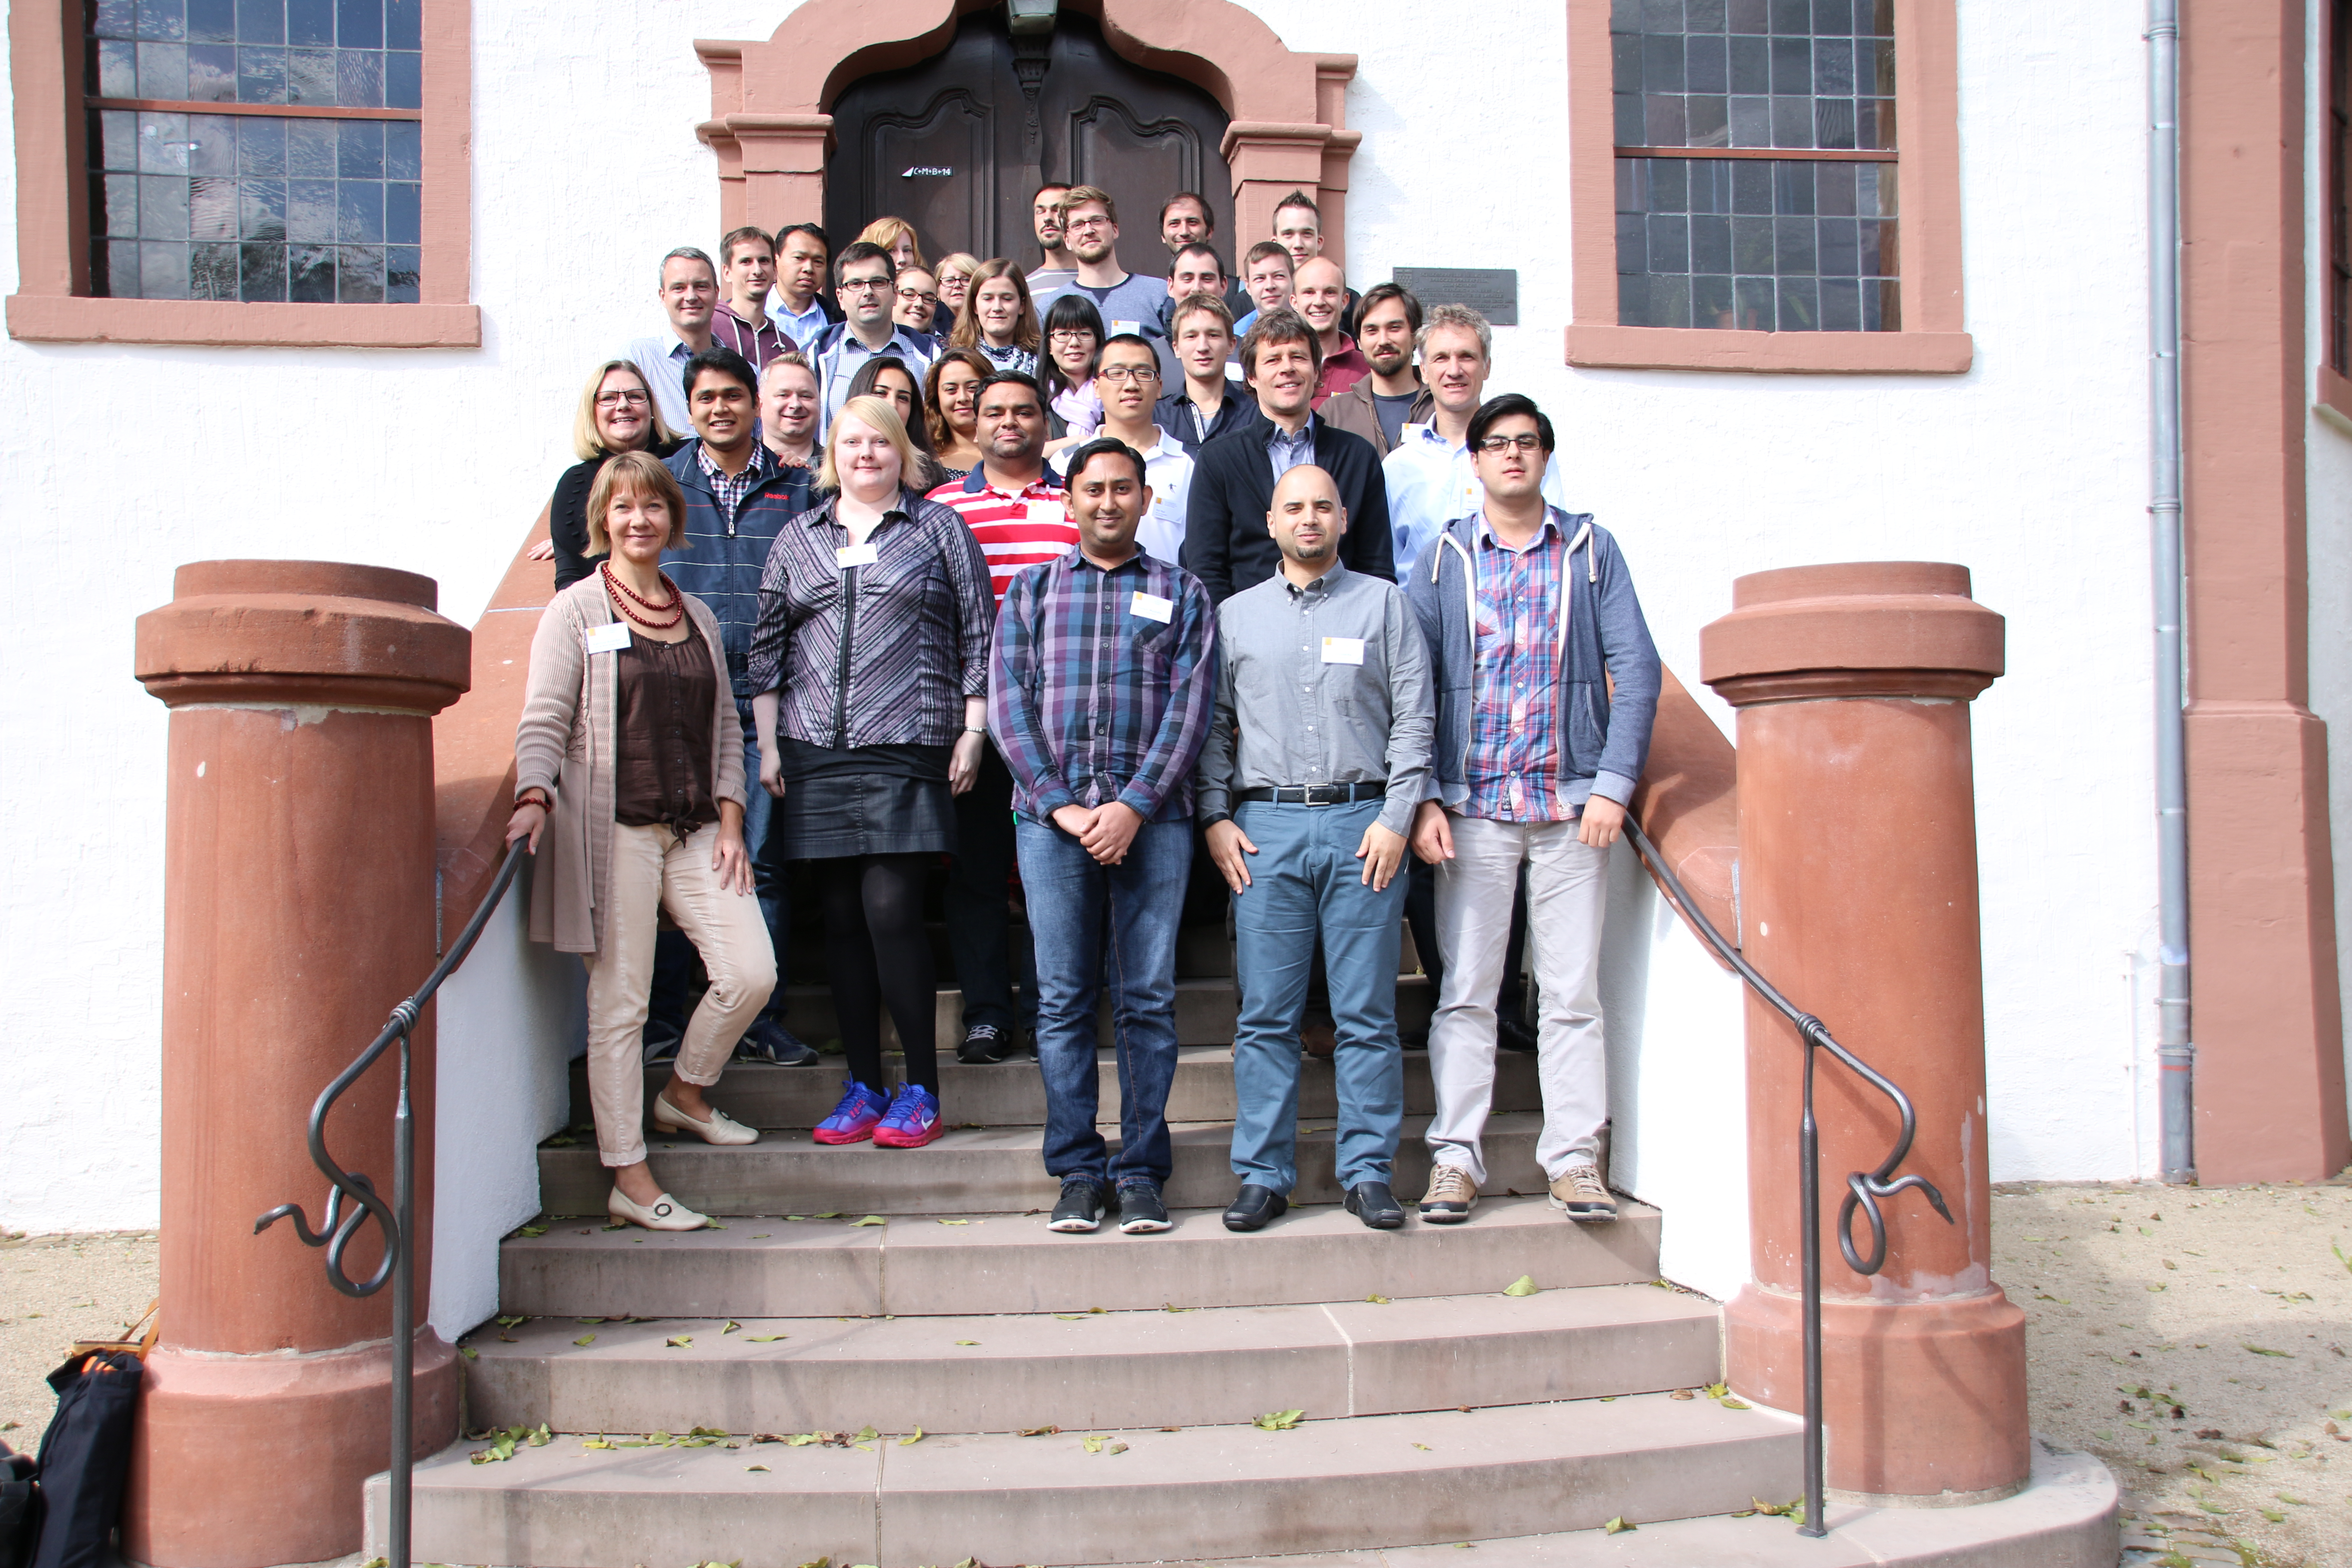 The notorious Dagstuhl group photo.